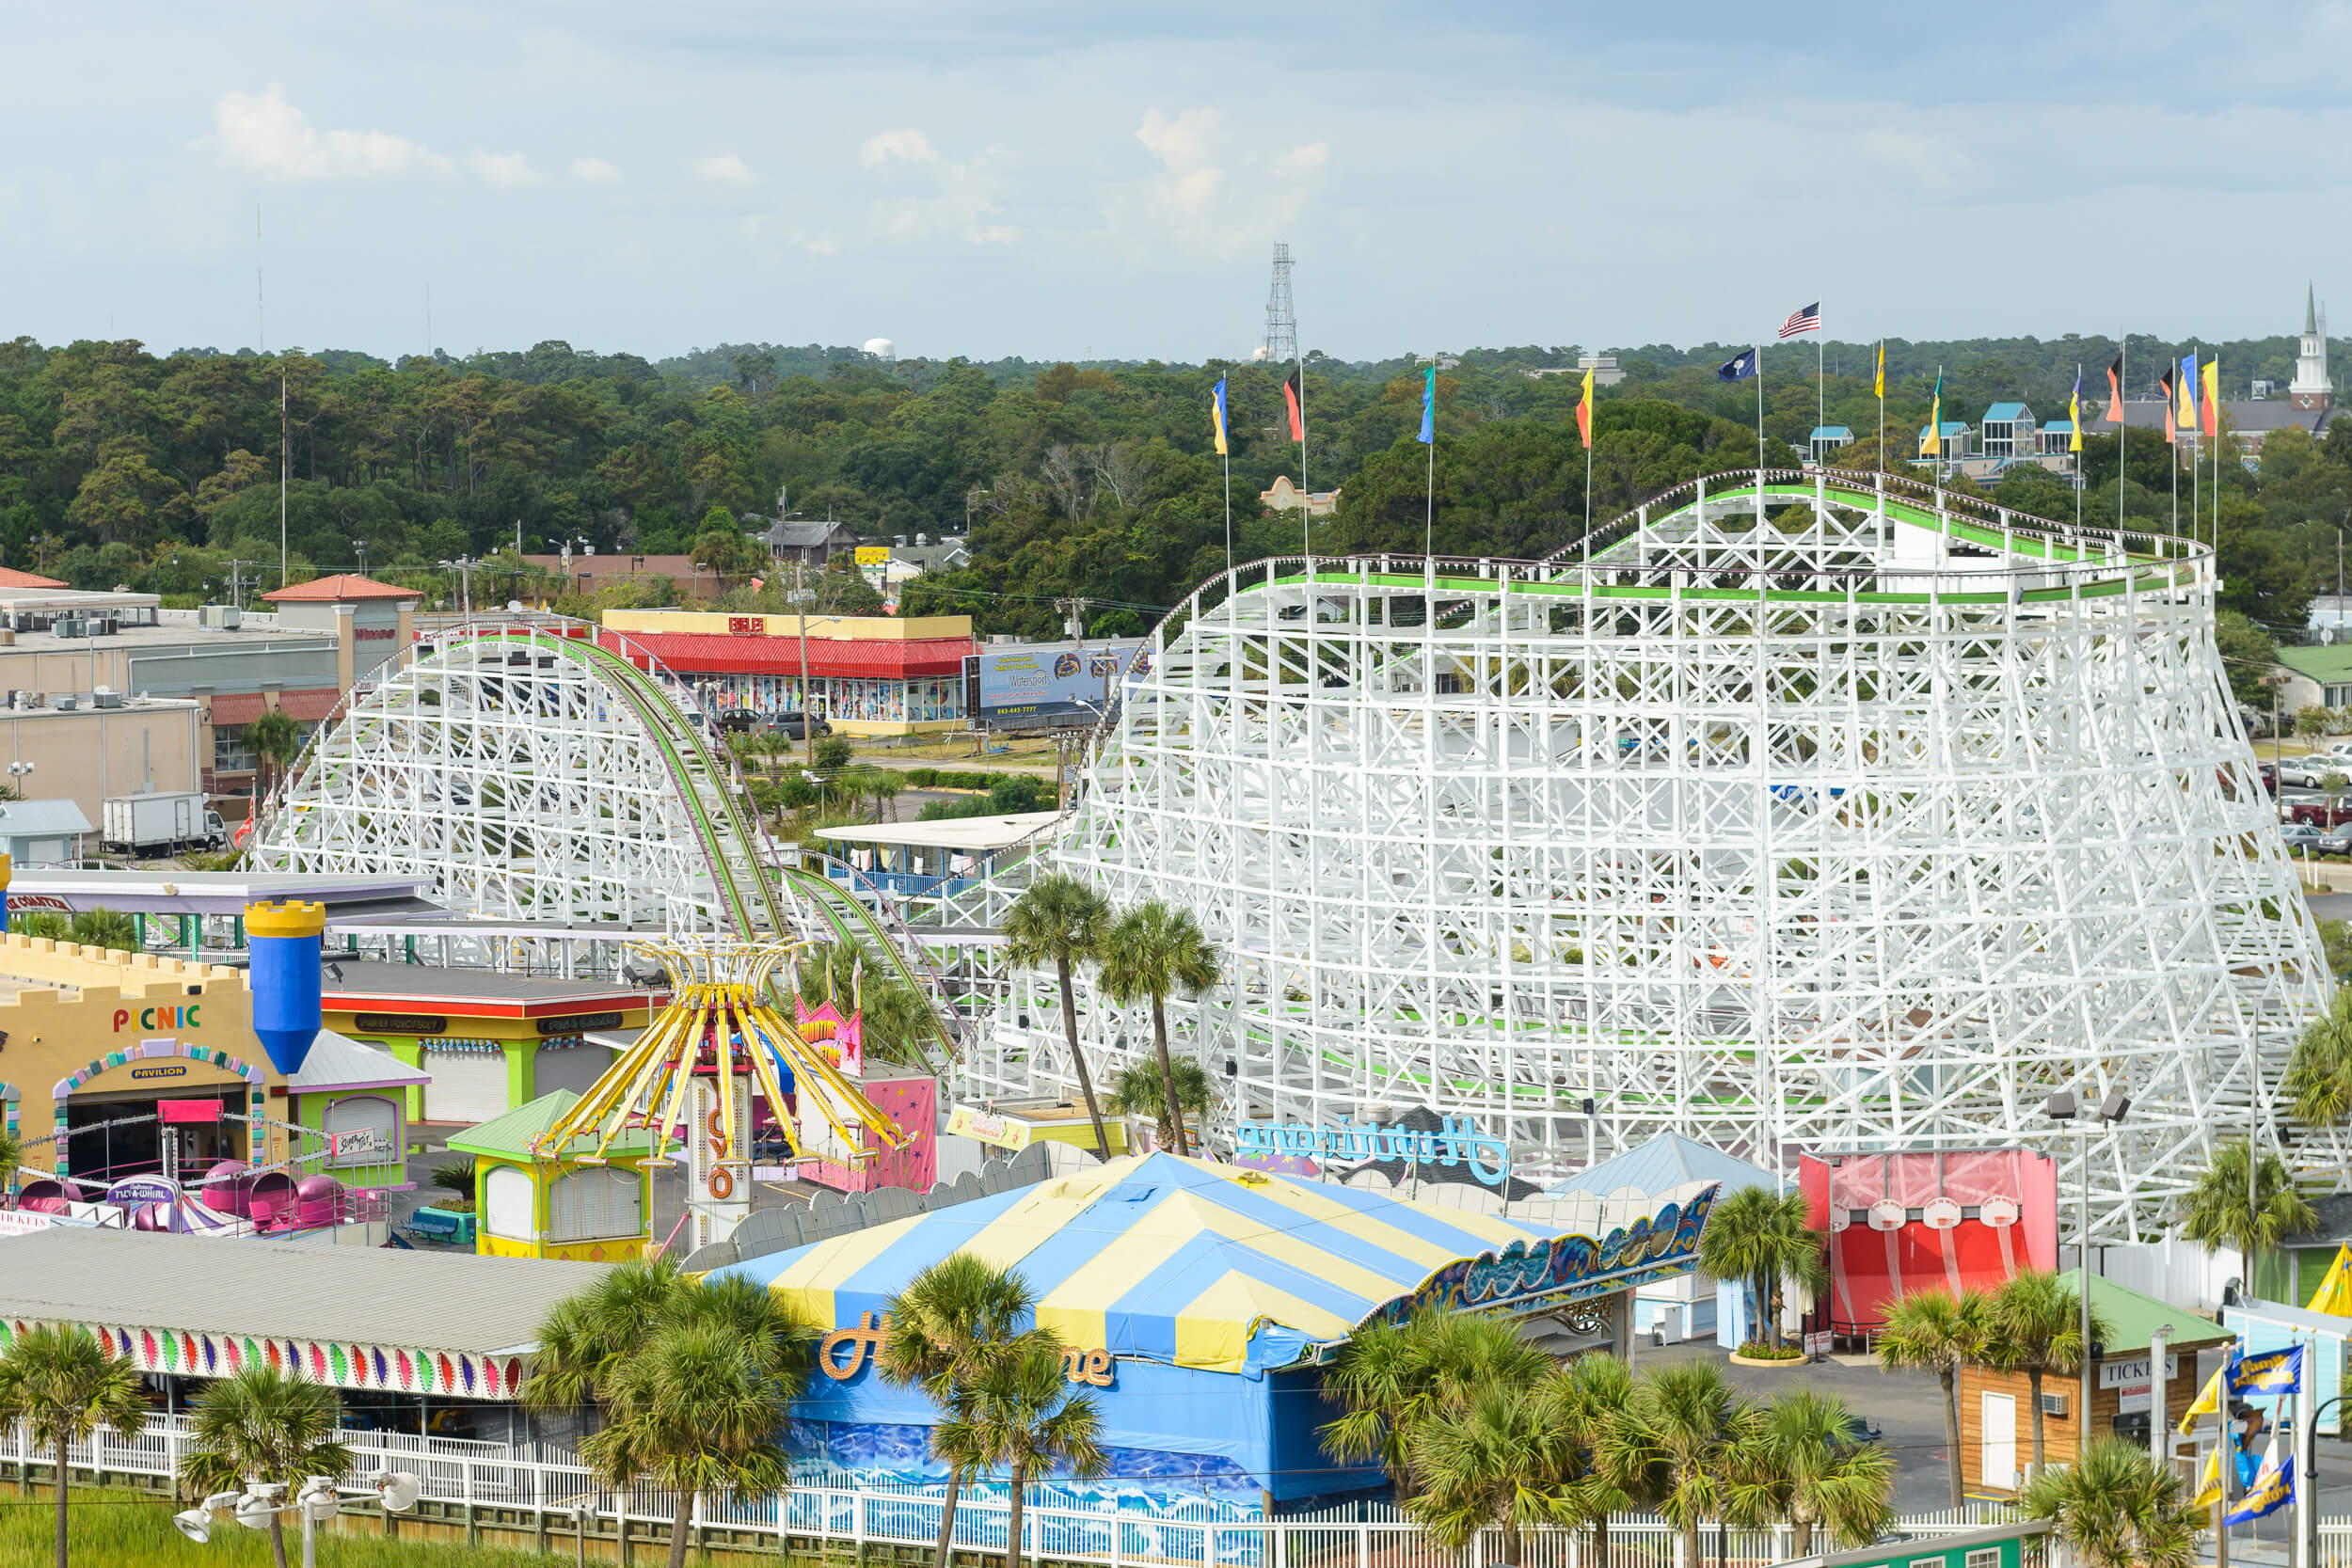 The BEST Family Resort In Myrtle Beach, S.C. - Review of ...